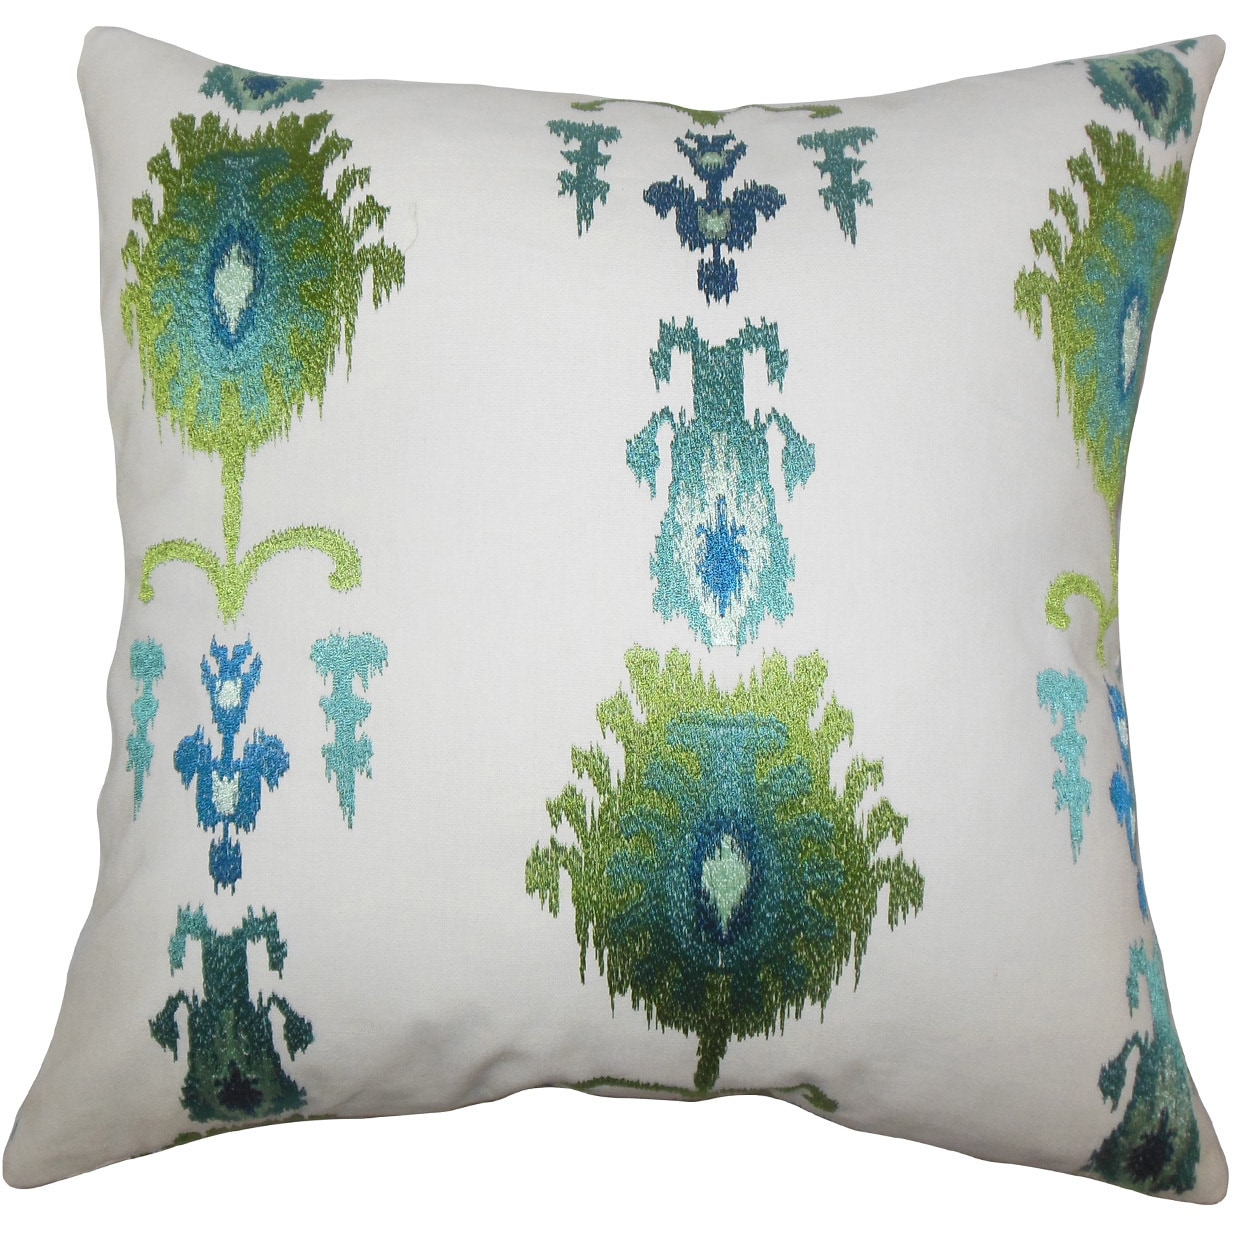 The Pillow Collection Calico Ikat 24-inch Down Feather Throw Pillow - Blue Green